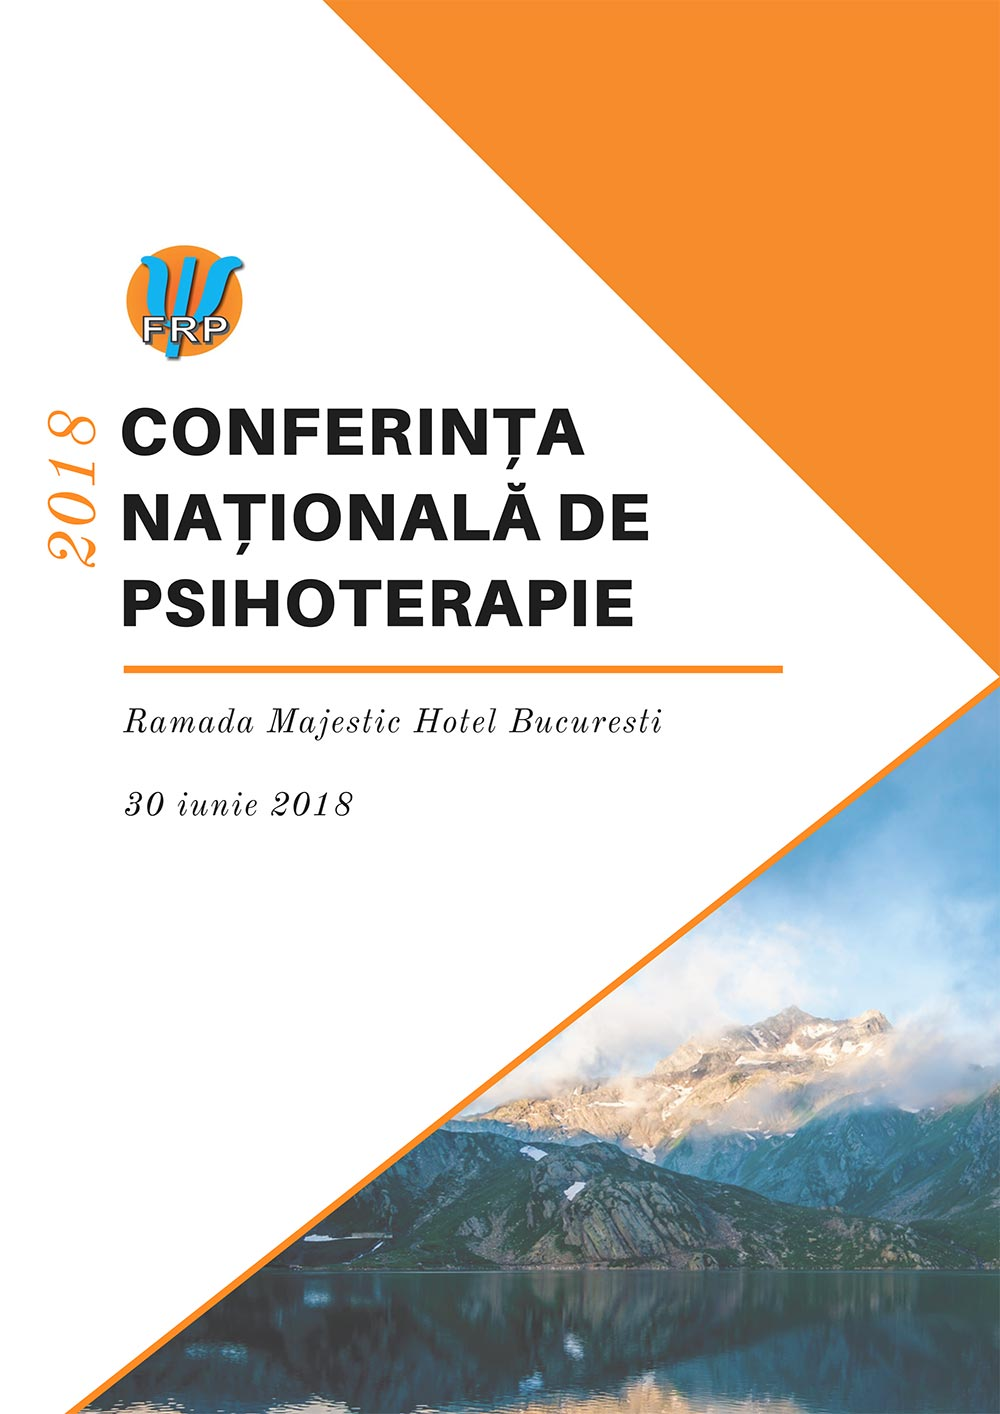 Conferinta Nationala de Psihoterapie 2018